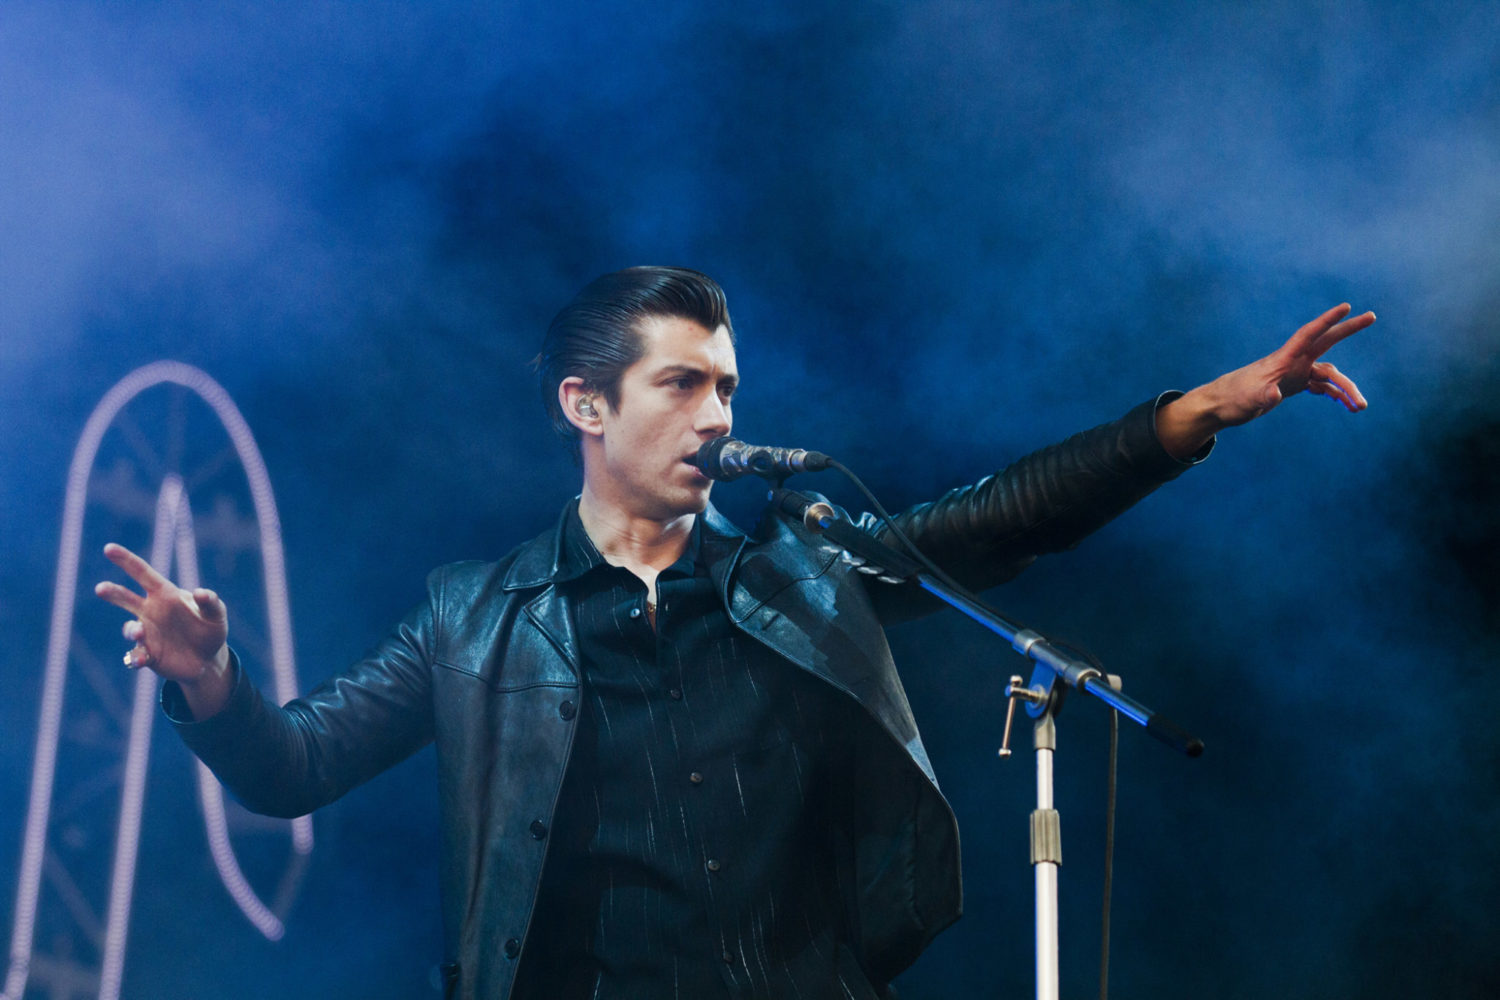 Arctic Monkeys are set to play Firefly Festival